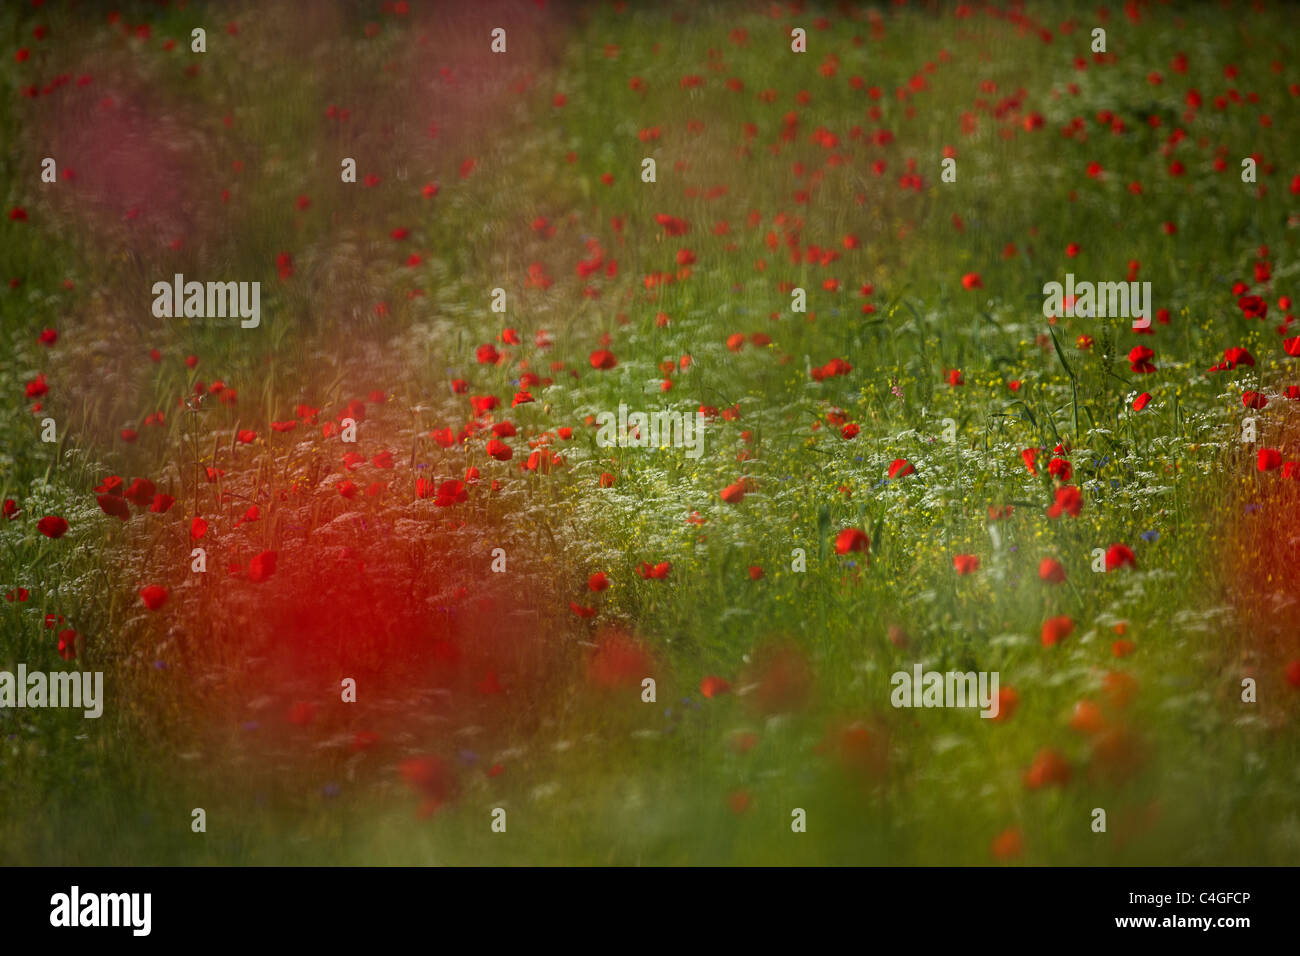 poppies in the Valnerina nr Campi, Umbria, Italy - Stock Image